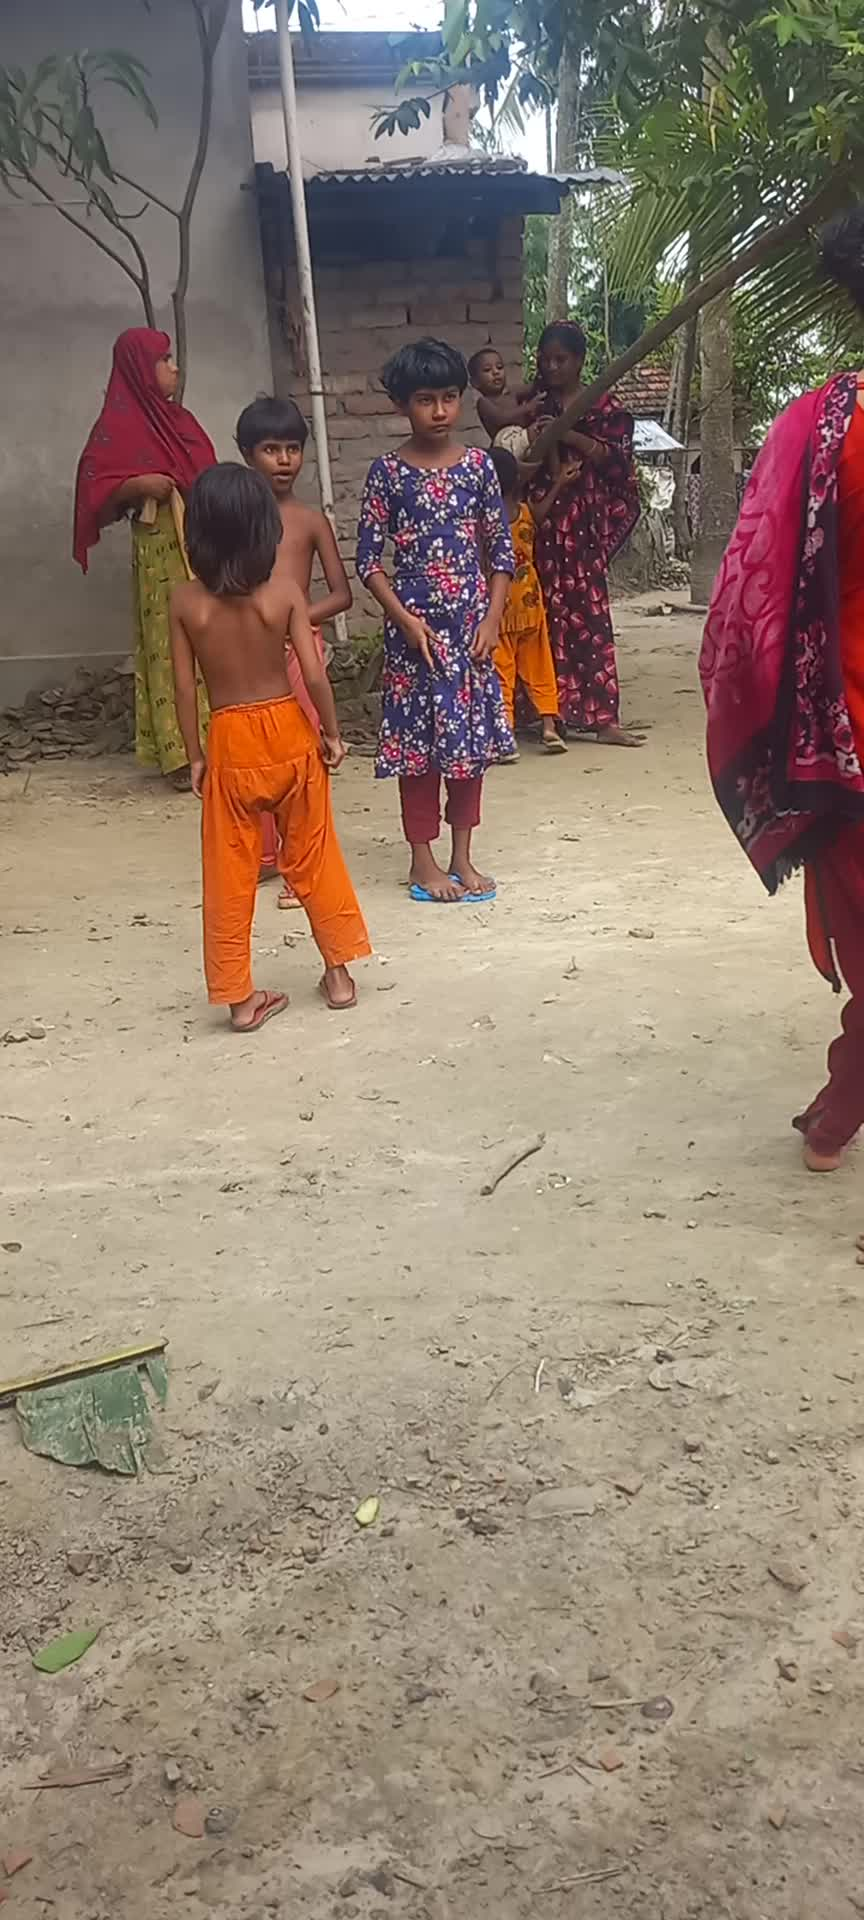 When you find some little boys in the village, you are shown a video of everyone playing together.